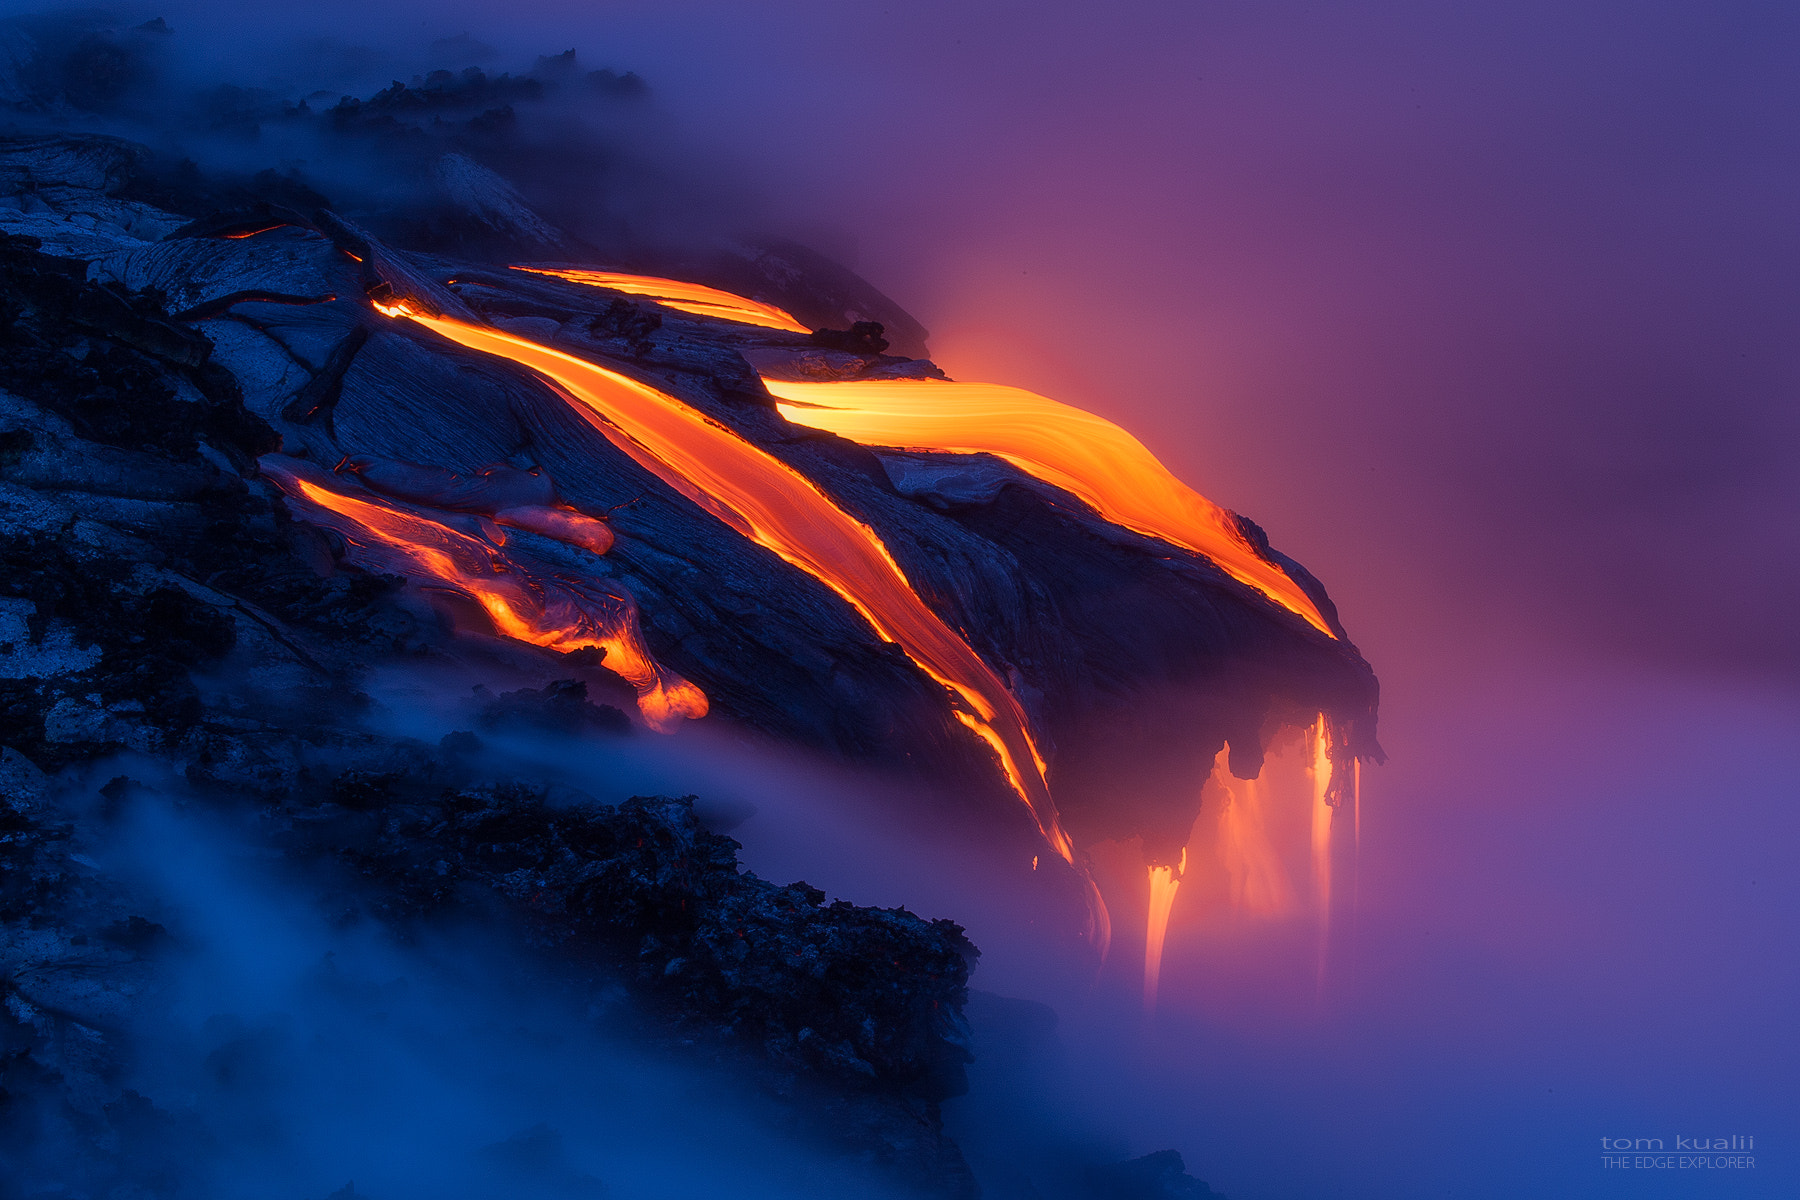 Photograph Abyssal by Tom Kualii on 500px